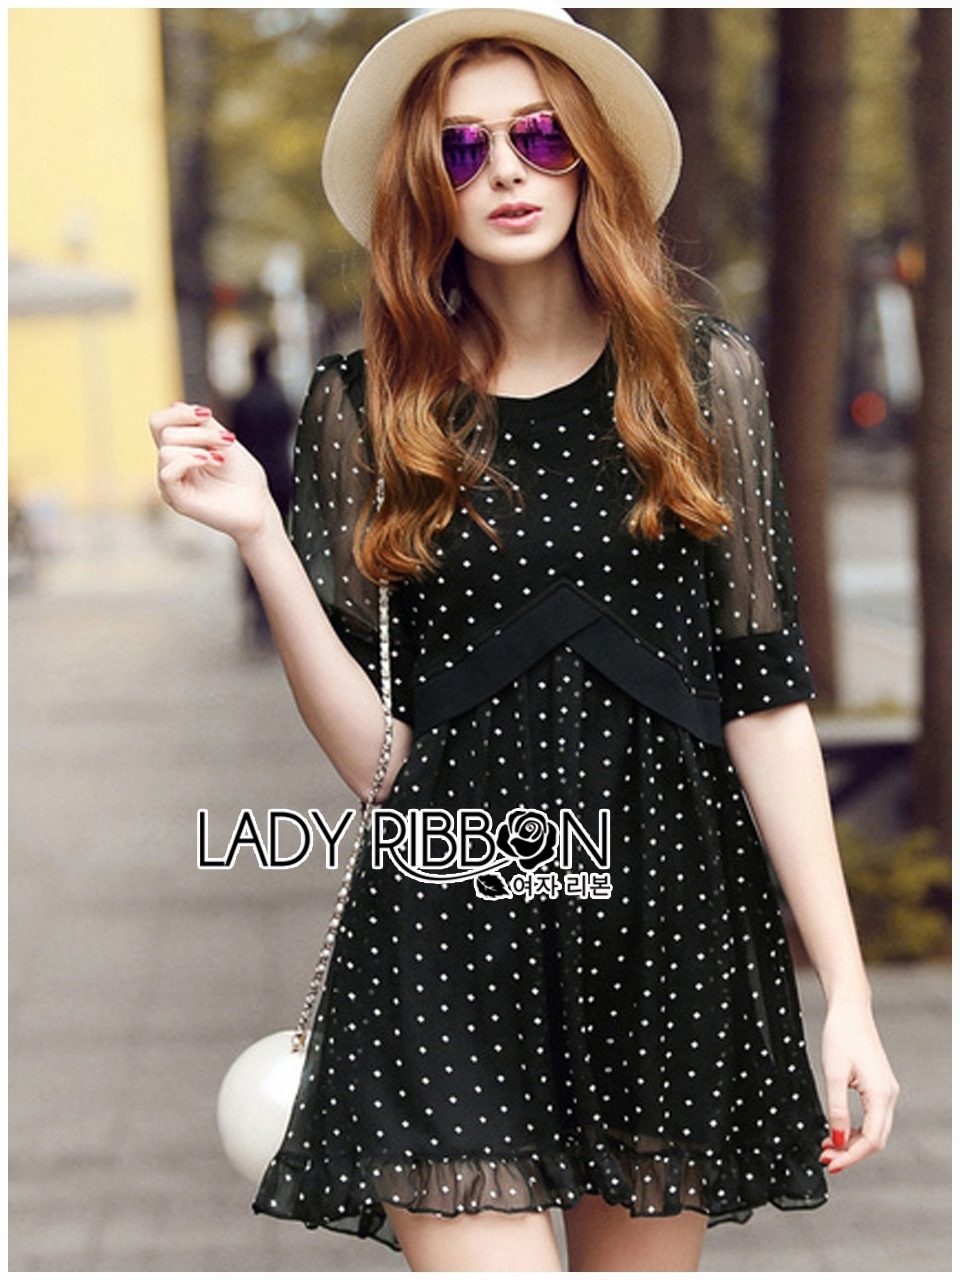 Lady Ribbon's Made Lady Elena Feminine Cross Dot Printed Chiffon and Knitted Dress